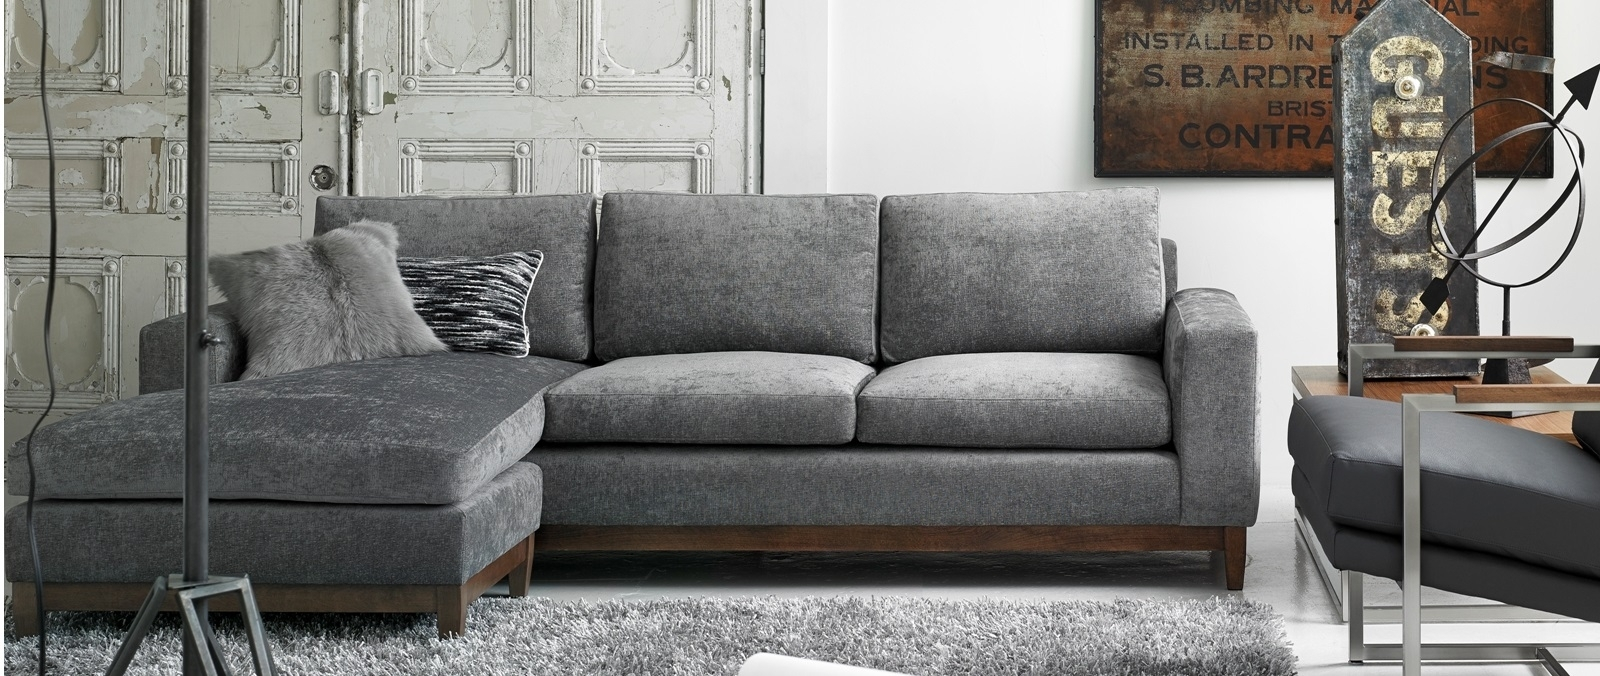 Modern Furniture Store Montreal And Ottawa | Mikazahome pertaining to Ottawa Sale Sectional Sofas (Image 7 of 10)